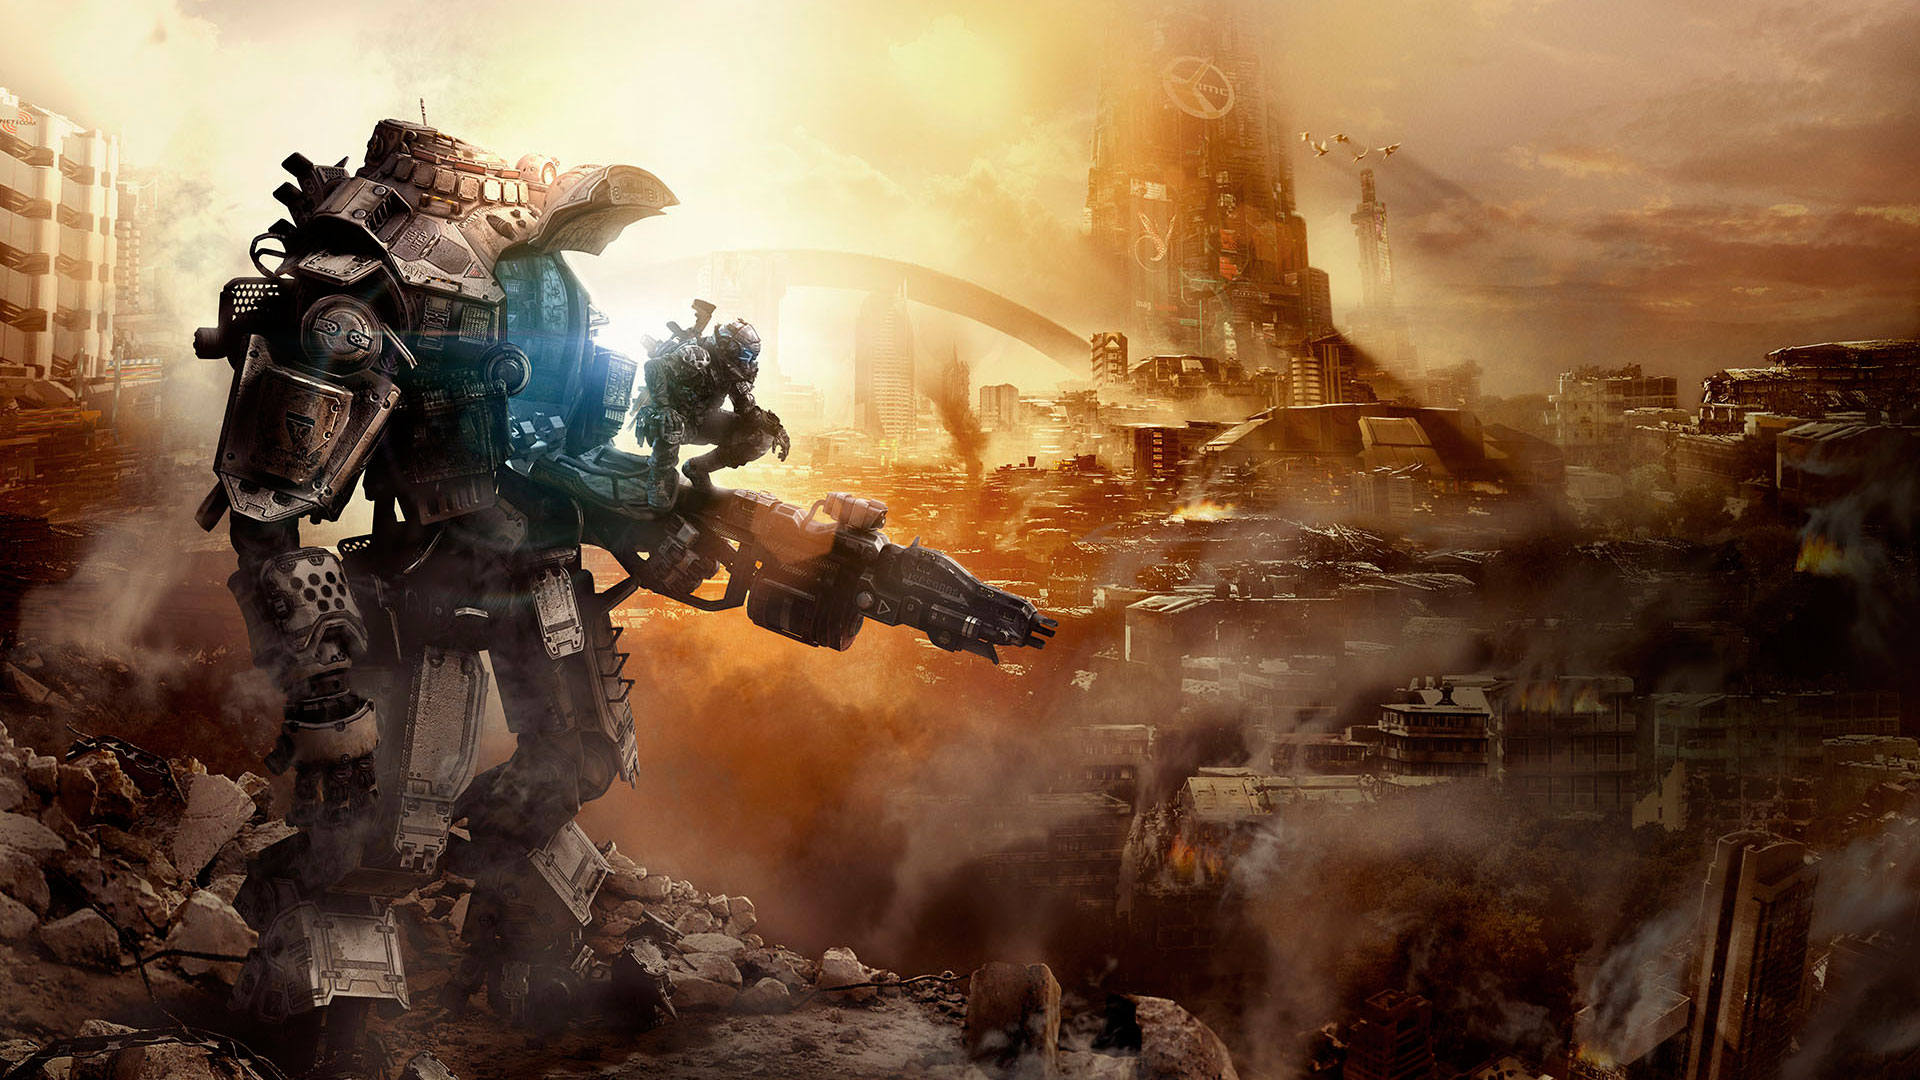 View and download our collection of Titanfall wallpapers 1193